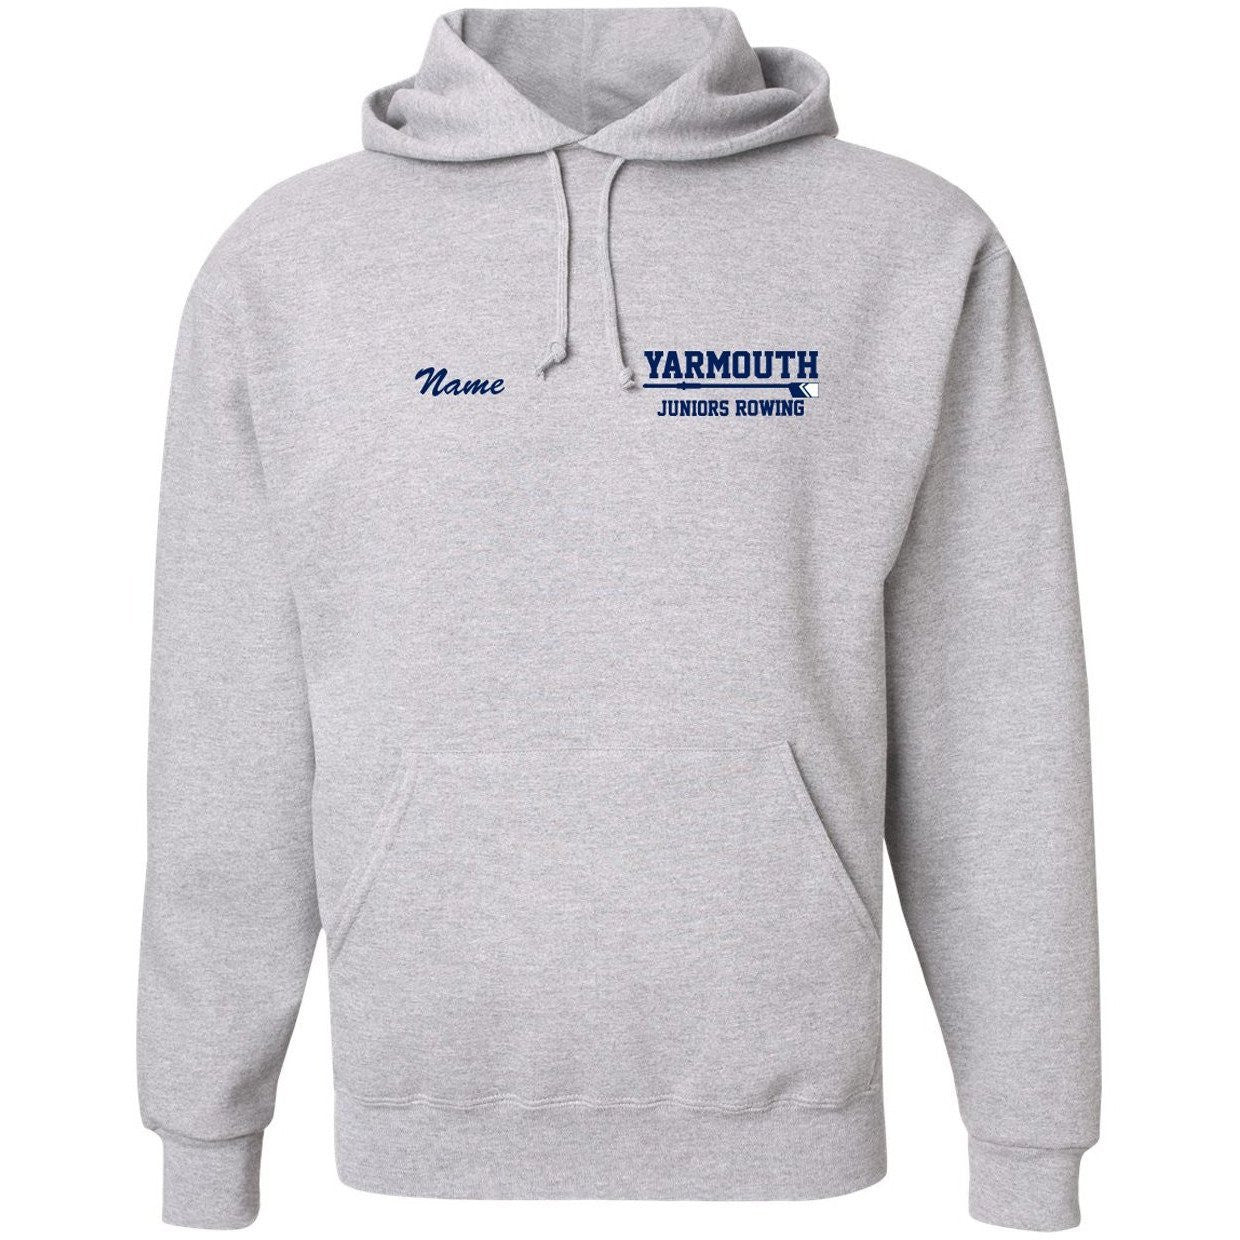 50/50 Hooded Yarmouth Rowing Pullover Sweatshirt